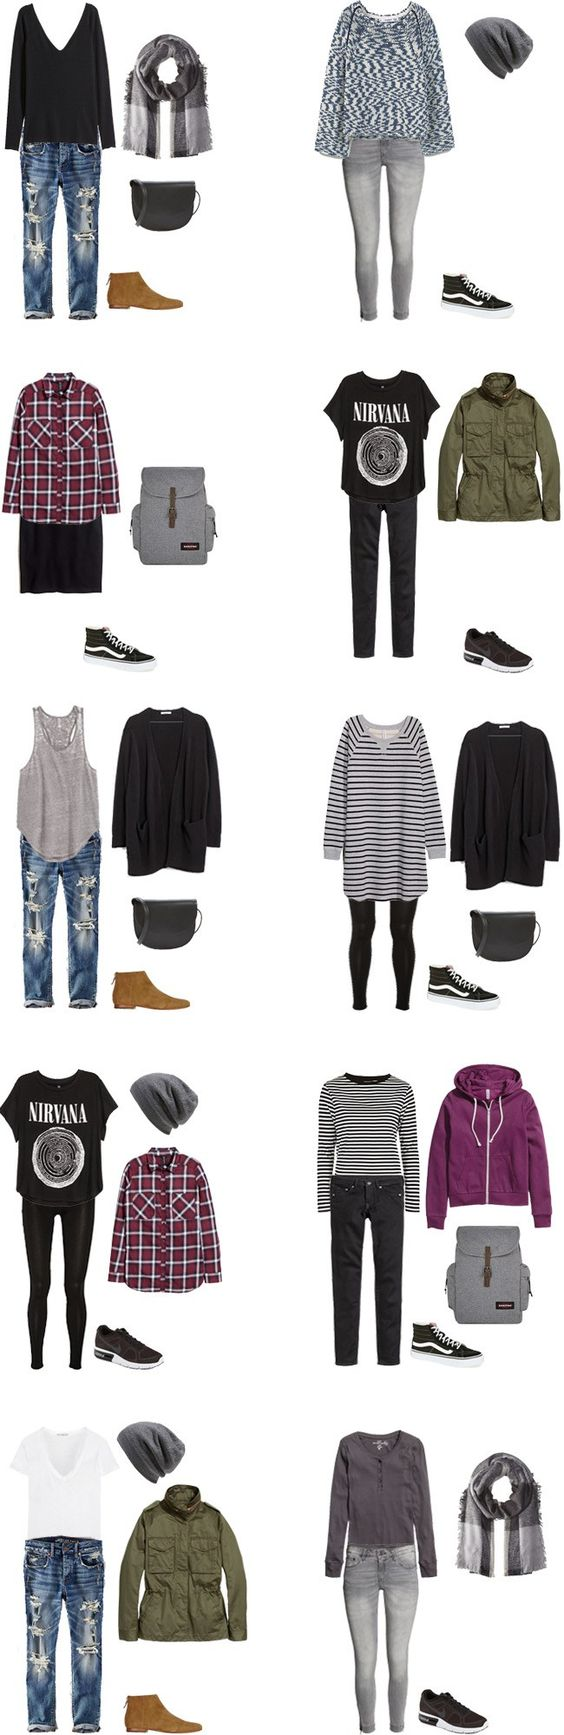 What to Wear in New Zealand Teen Edition Outfits 11-20 #travellight #packinglight #travel #traveltips